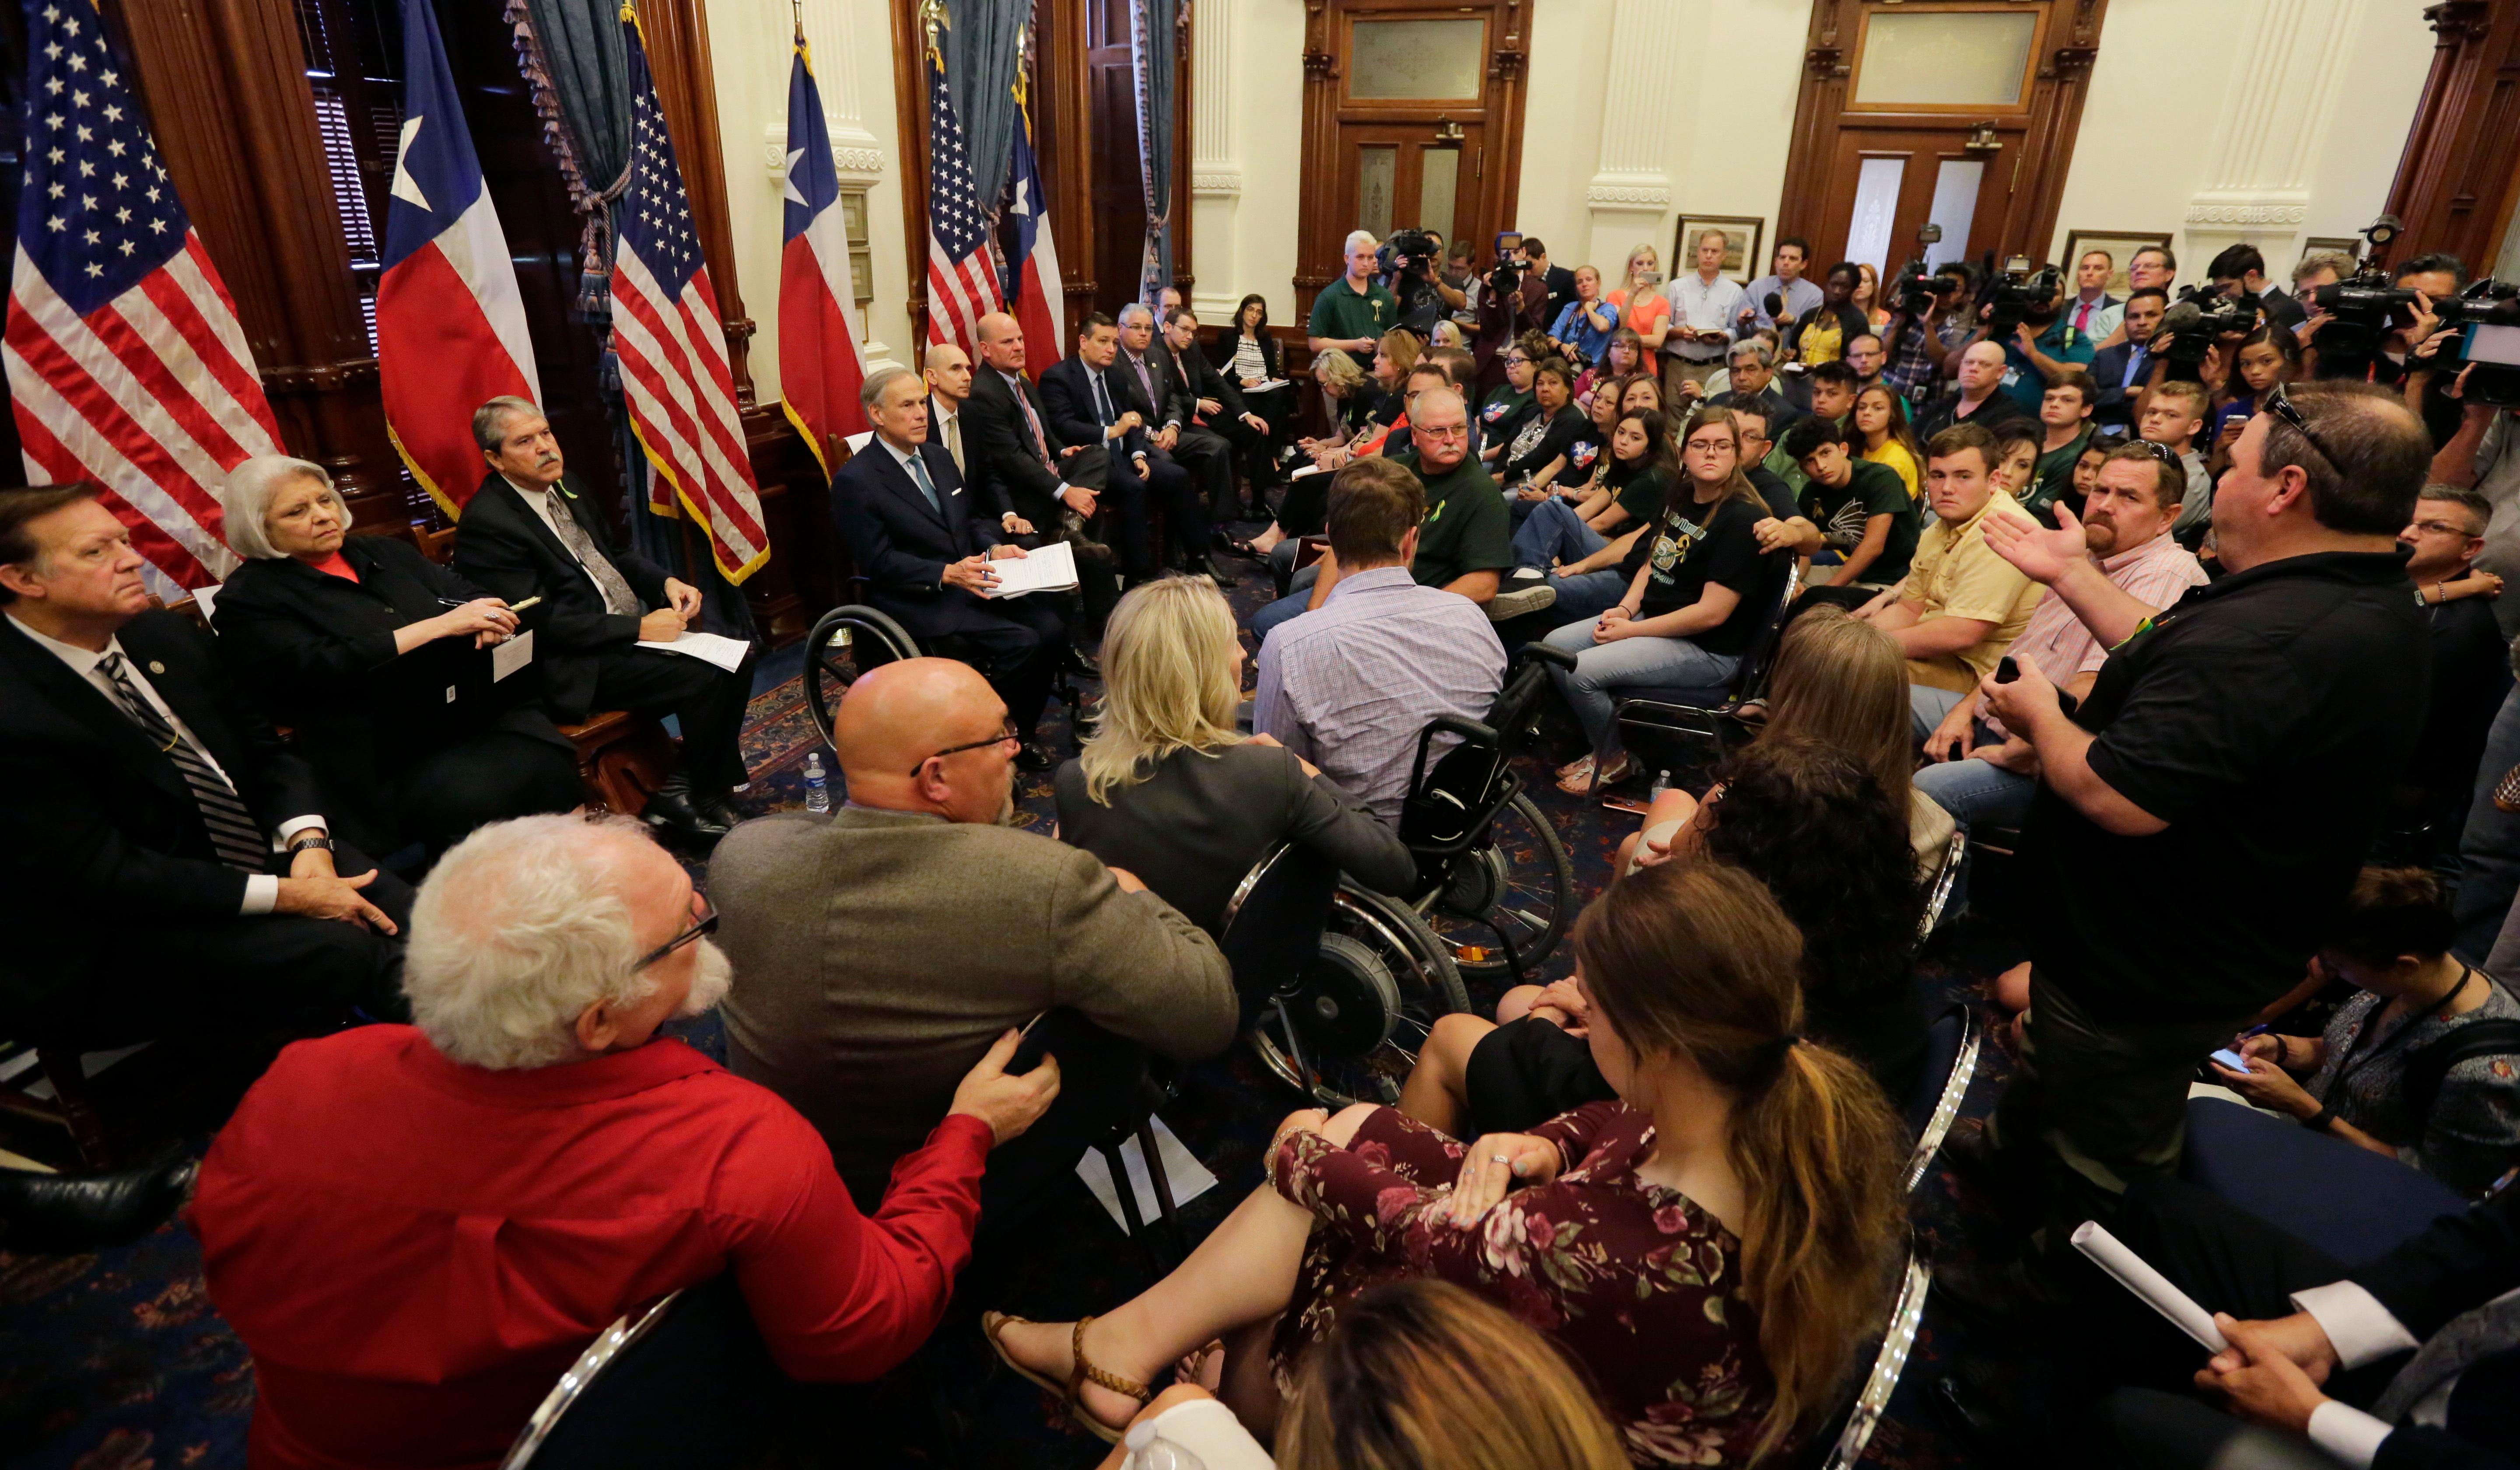 Scot Rice, standing right, speaks during a roundtable discussion in Austin, Texas, Thursday, May 24, 2018, hosted by Texas Gov. Gregg Abbott to address safety and security at Texas schools in the wake of the shooting at Santa Fe, Texas. Rice's wife Flo Rice, a substitute teacher, was carried from the Santa Fe scene of last week's school shooting after she was shot in the leg. (AP Photo/Eric Gay)